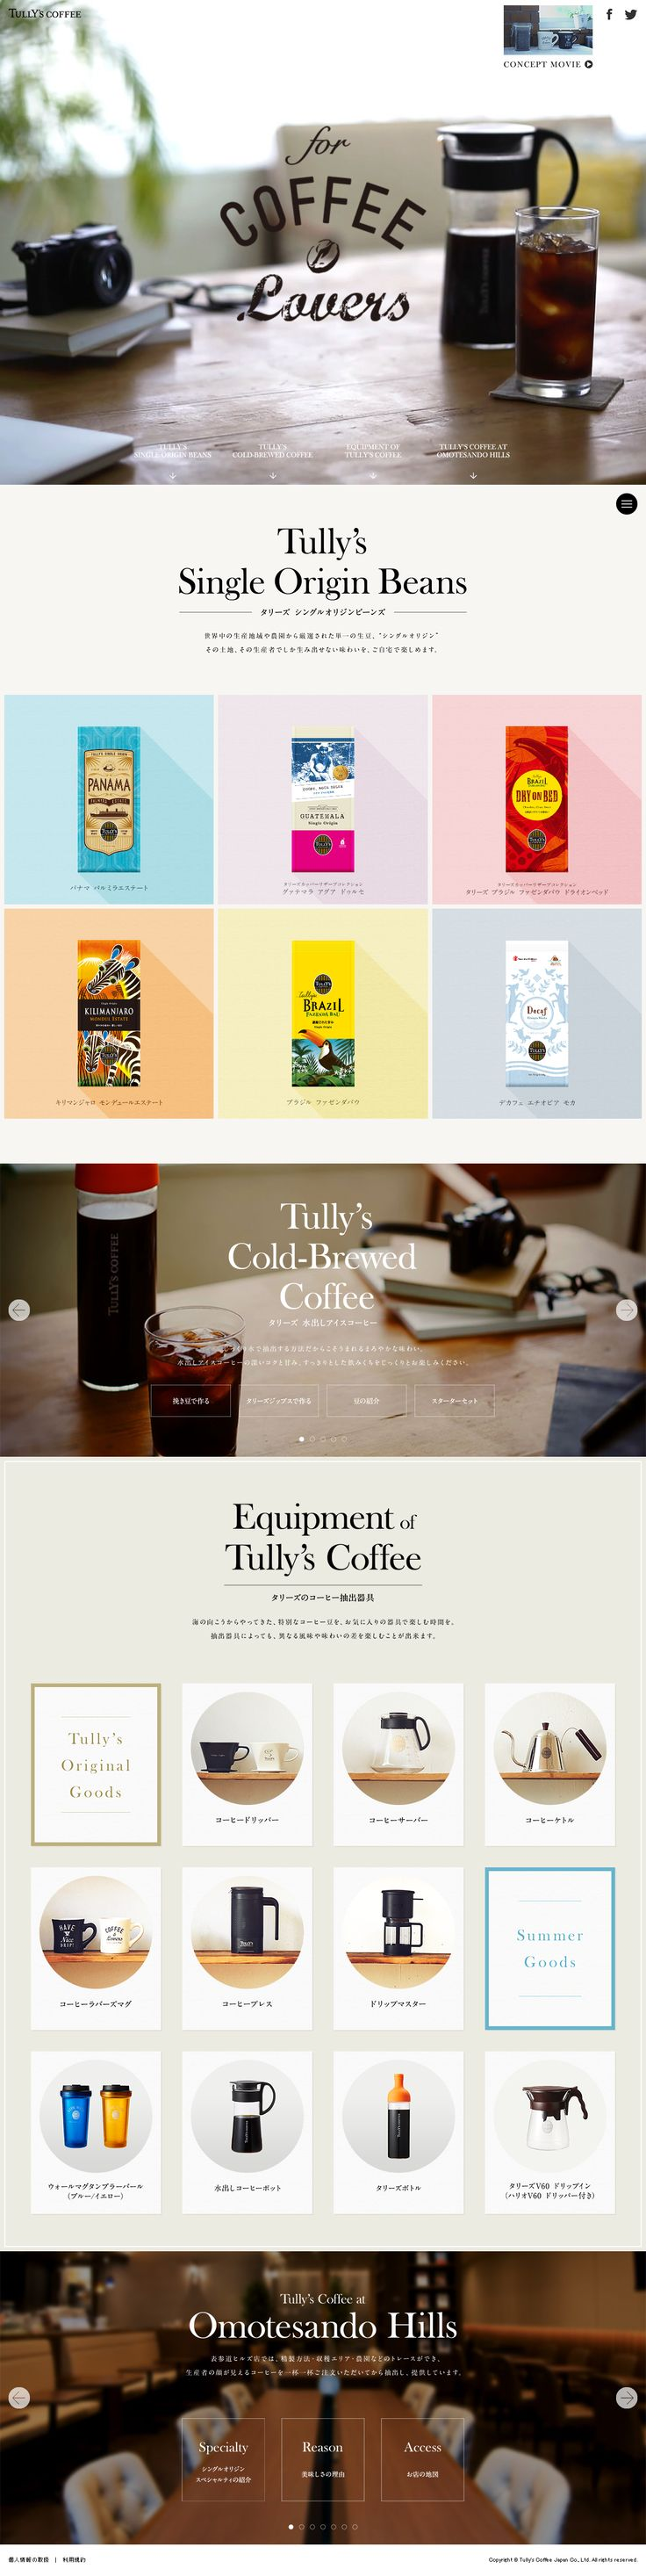 http://www.tullys.co.jp/cpn/coffeelovers/index.html